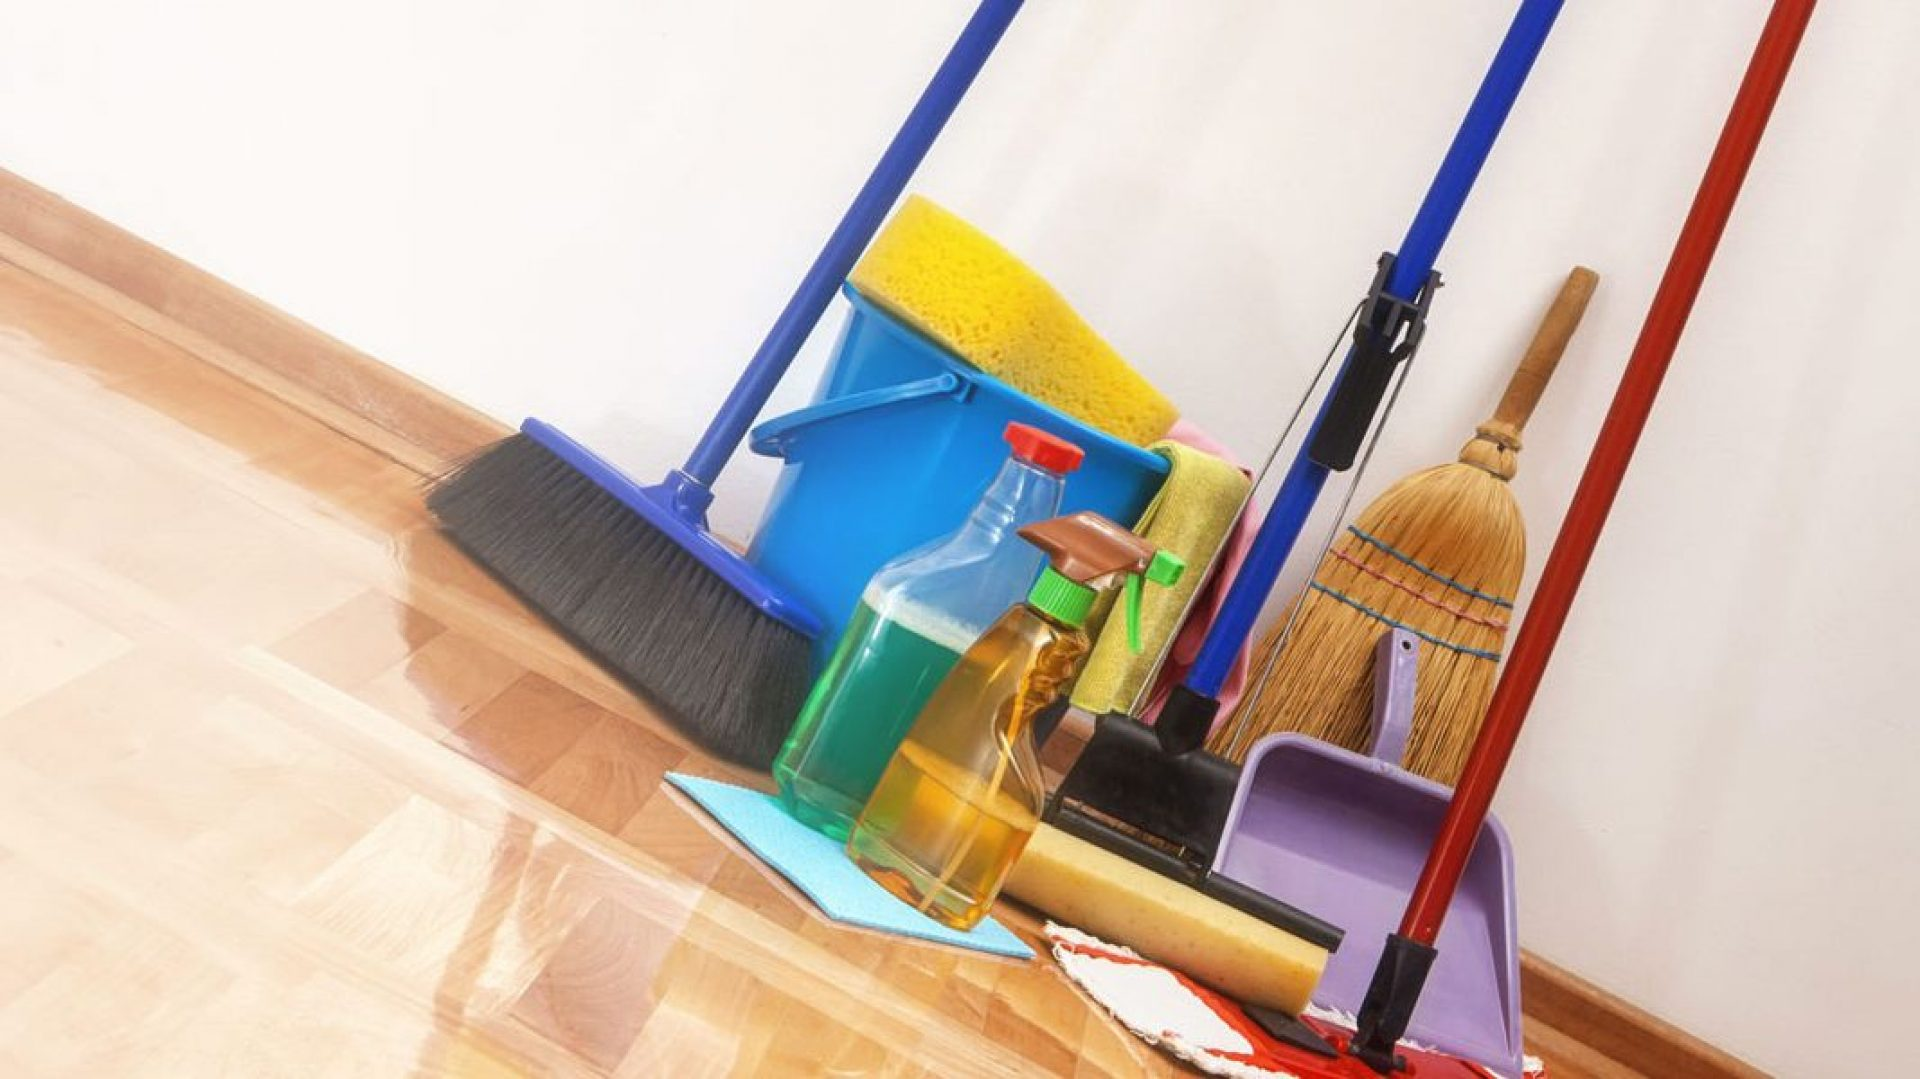 GLEAMKING – Professional Quality Cleaning Products